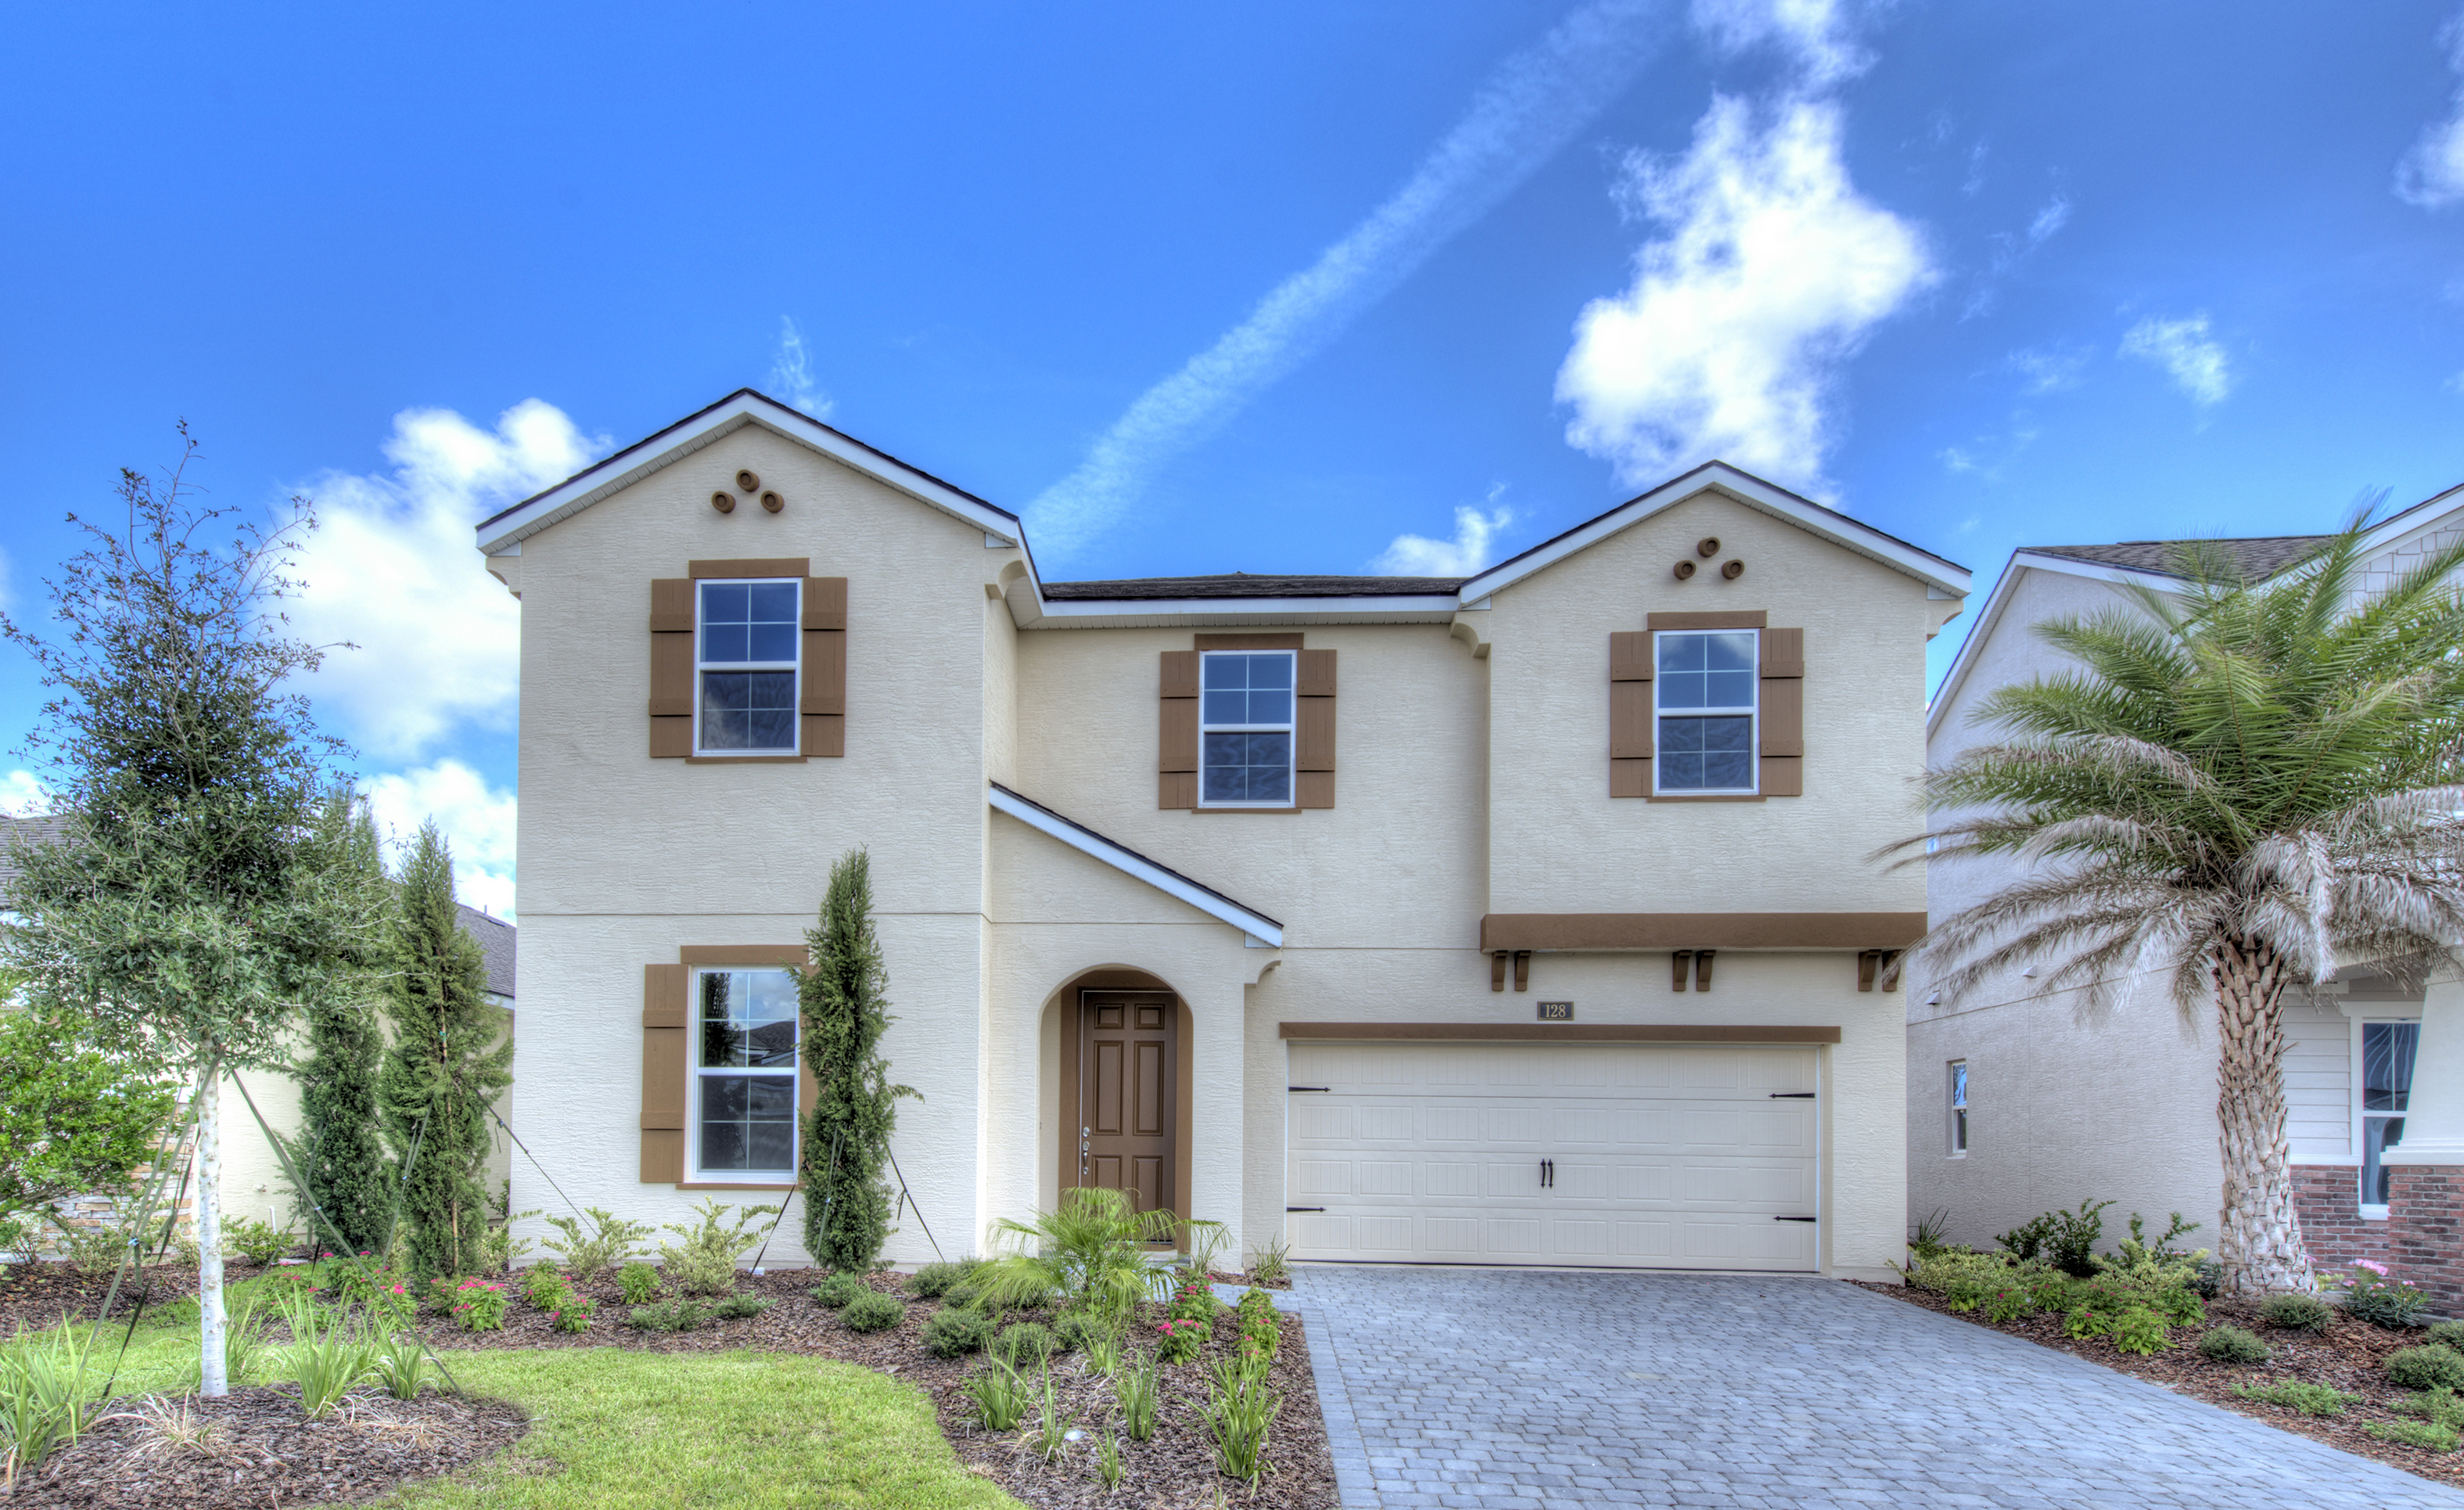 128 Azure Mist Way, Daytona Beach